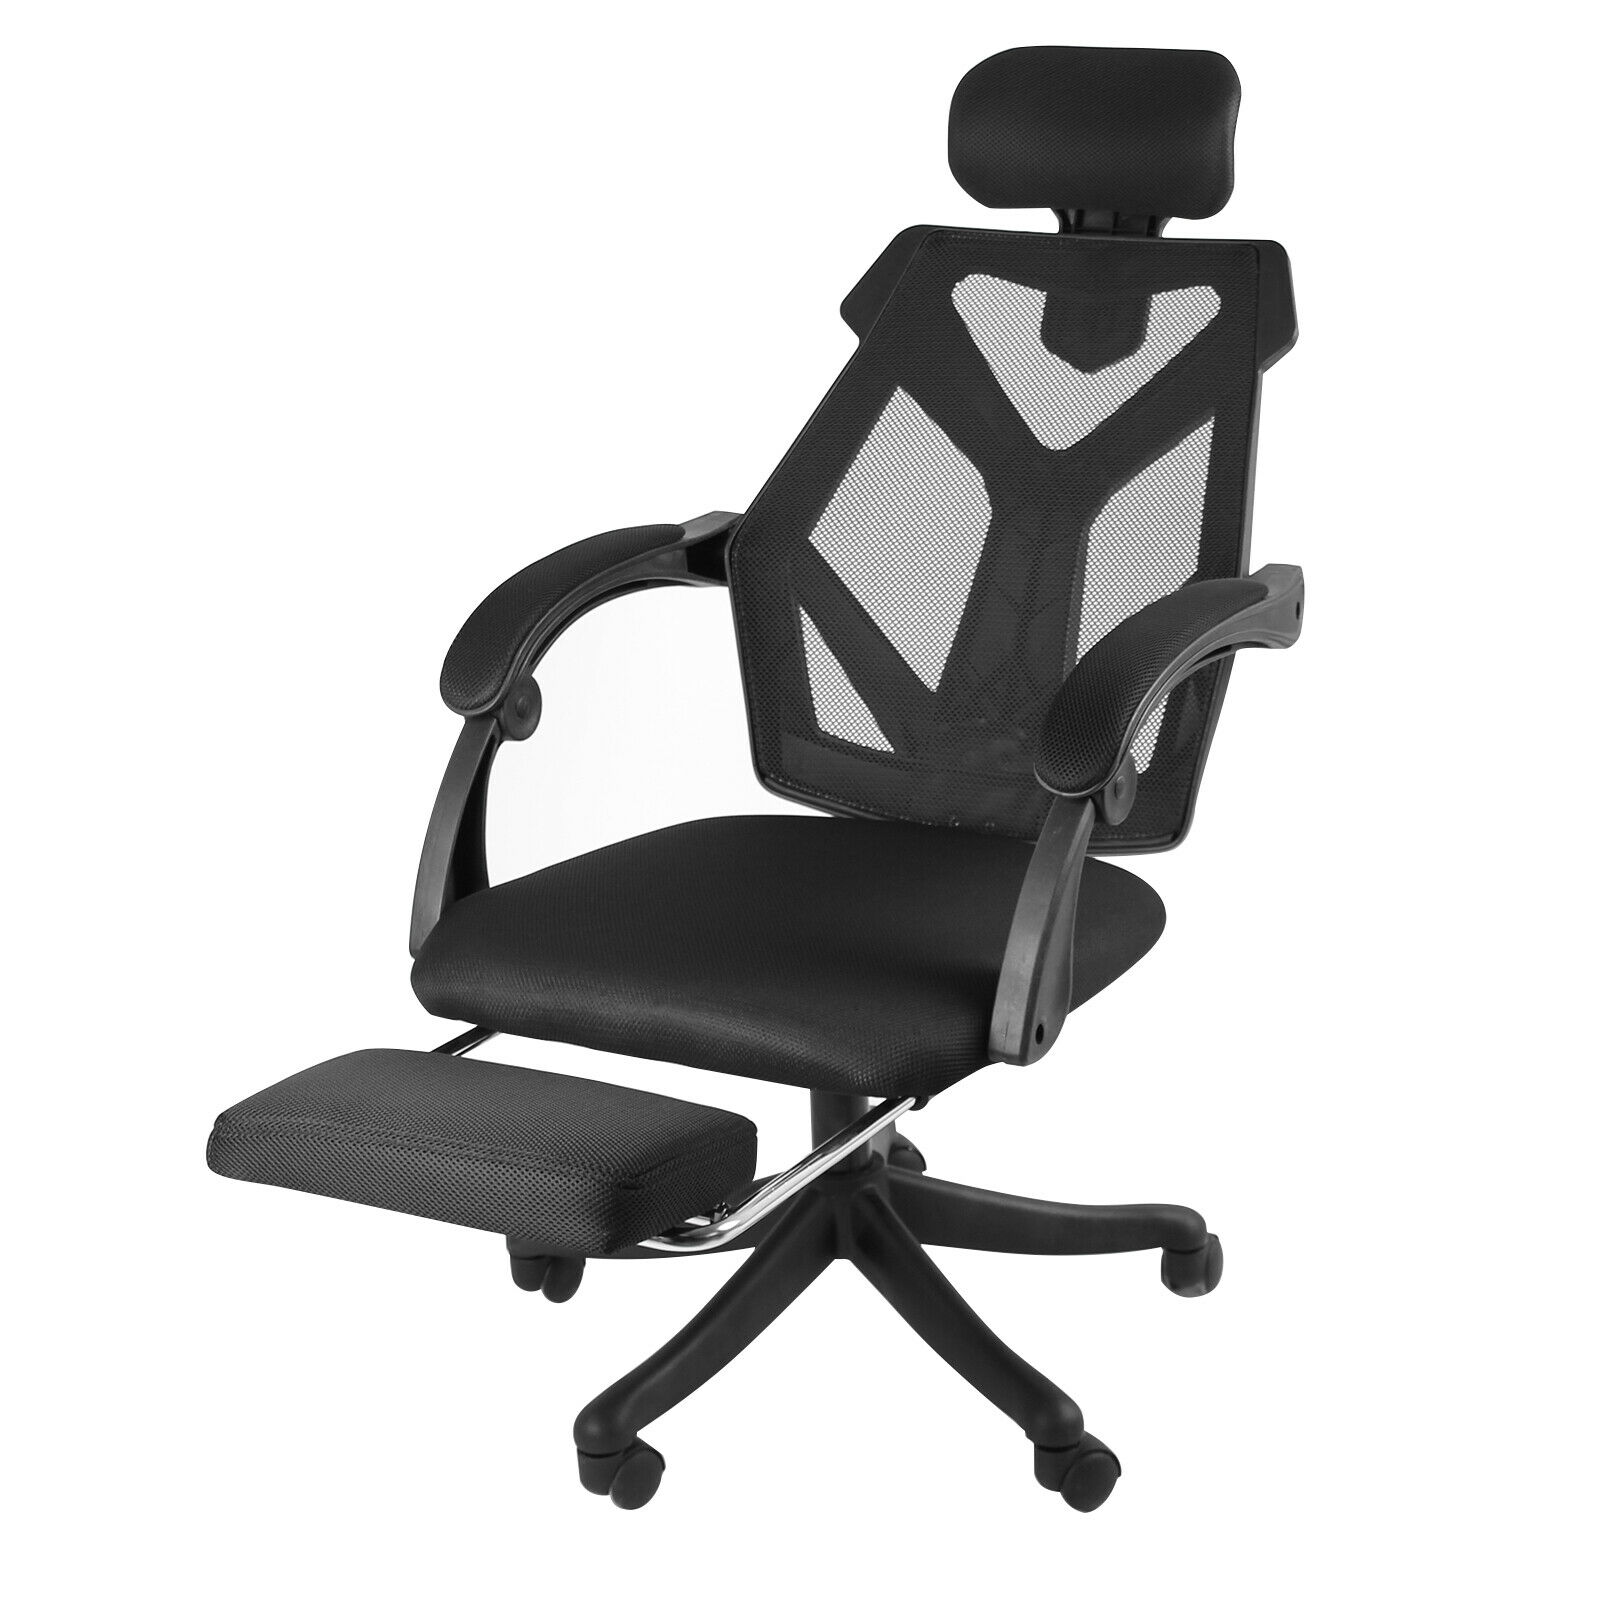 High-Back Ergonomic Office Recliner Desk Chair Adjustable Comfortable Task Chair